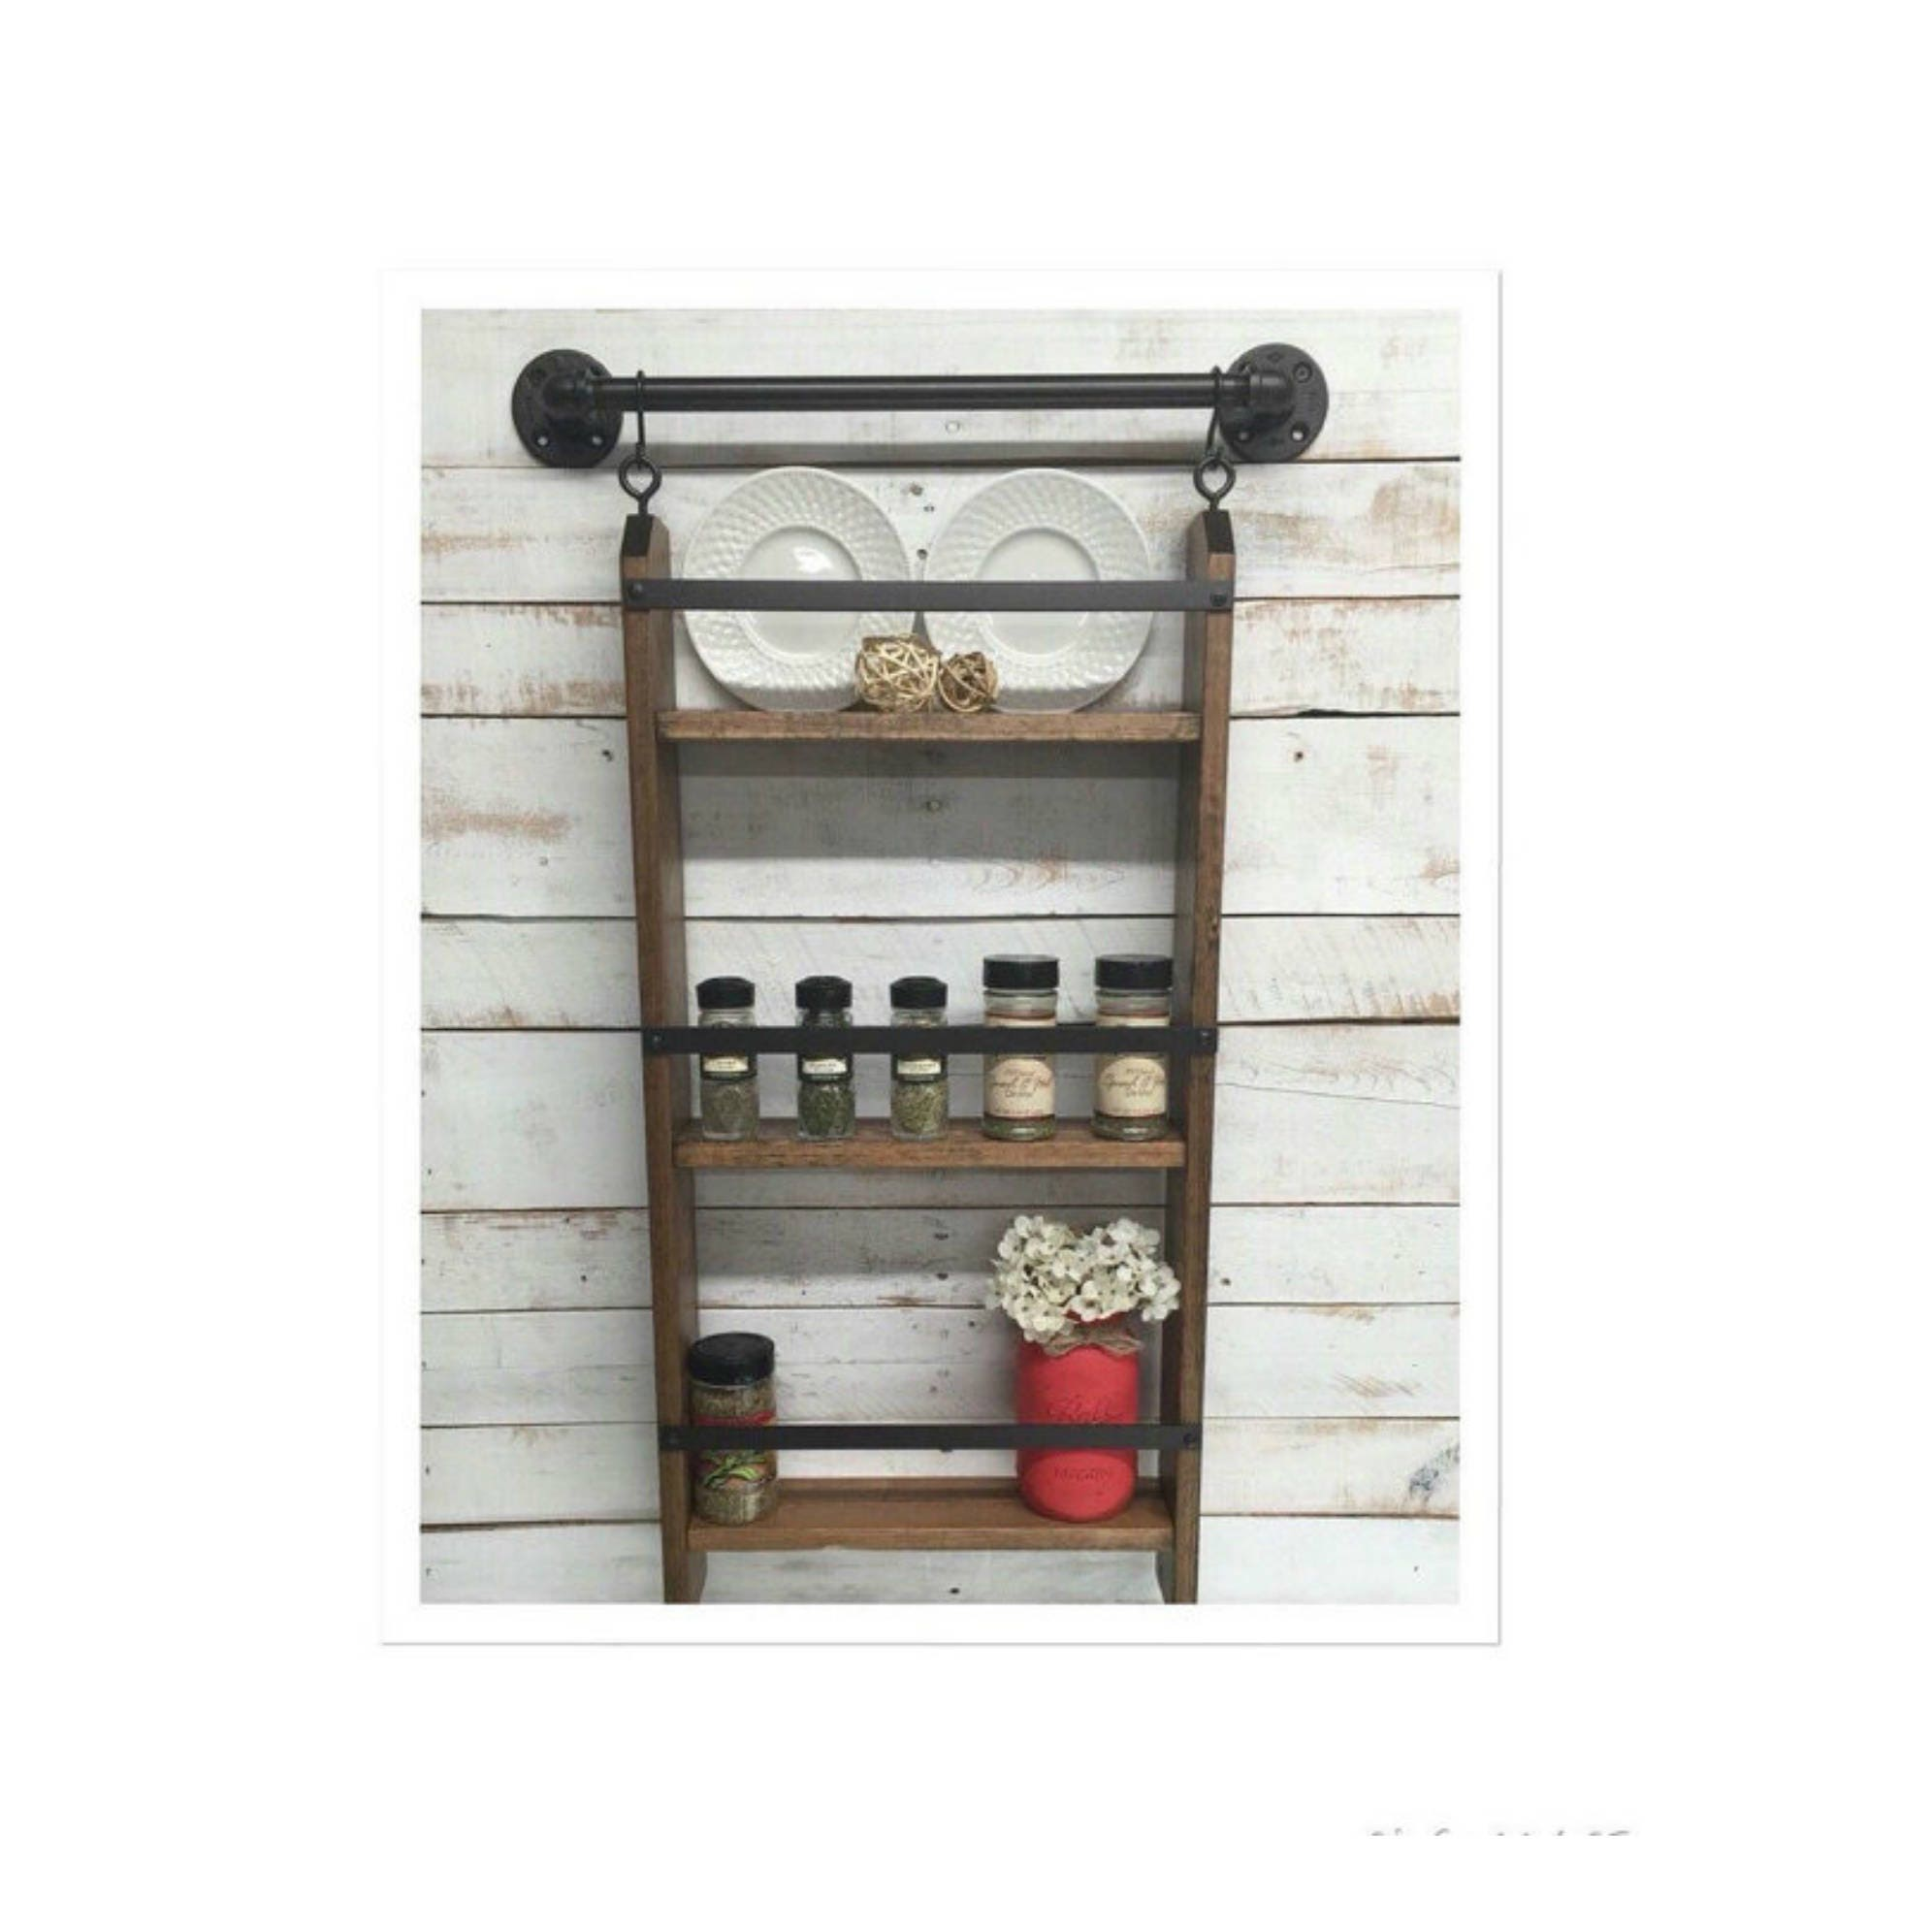 Shelves For Kitchen Wall: Wood Kitchen Shelf Kitchen Shelves Kitchen Wall Shelf